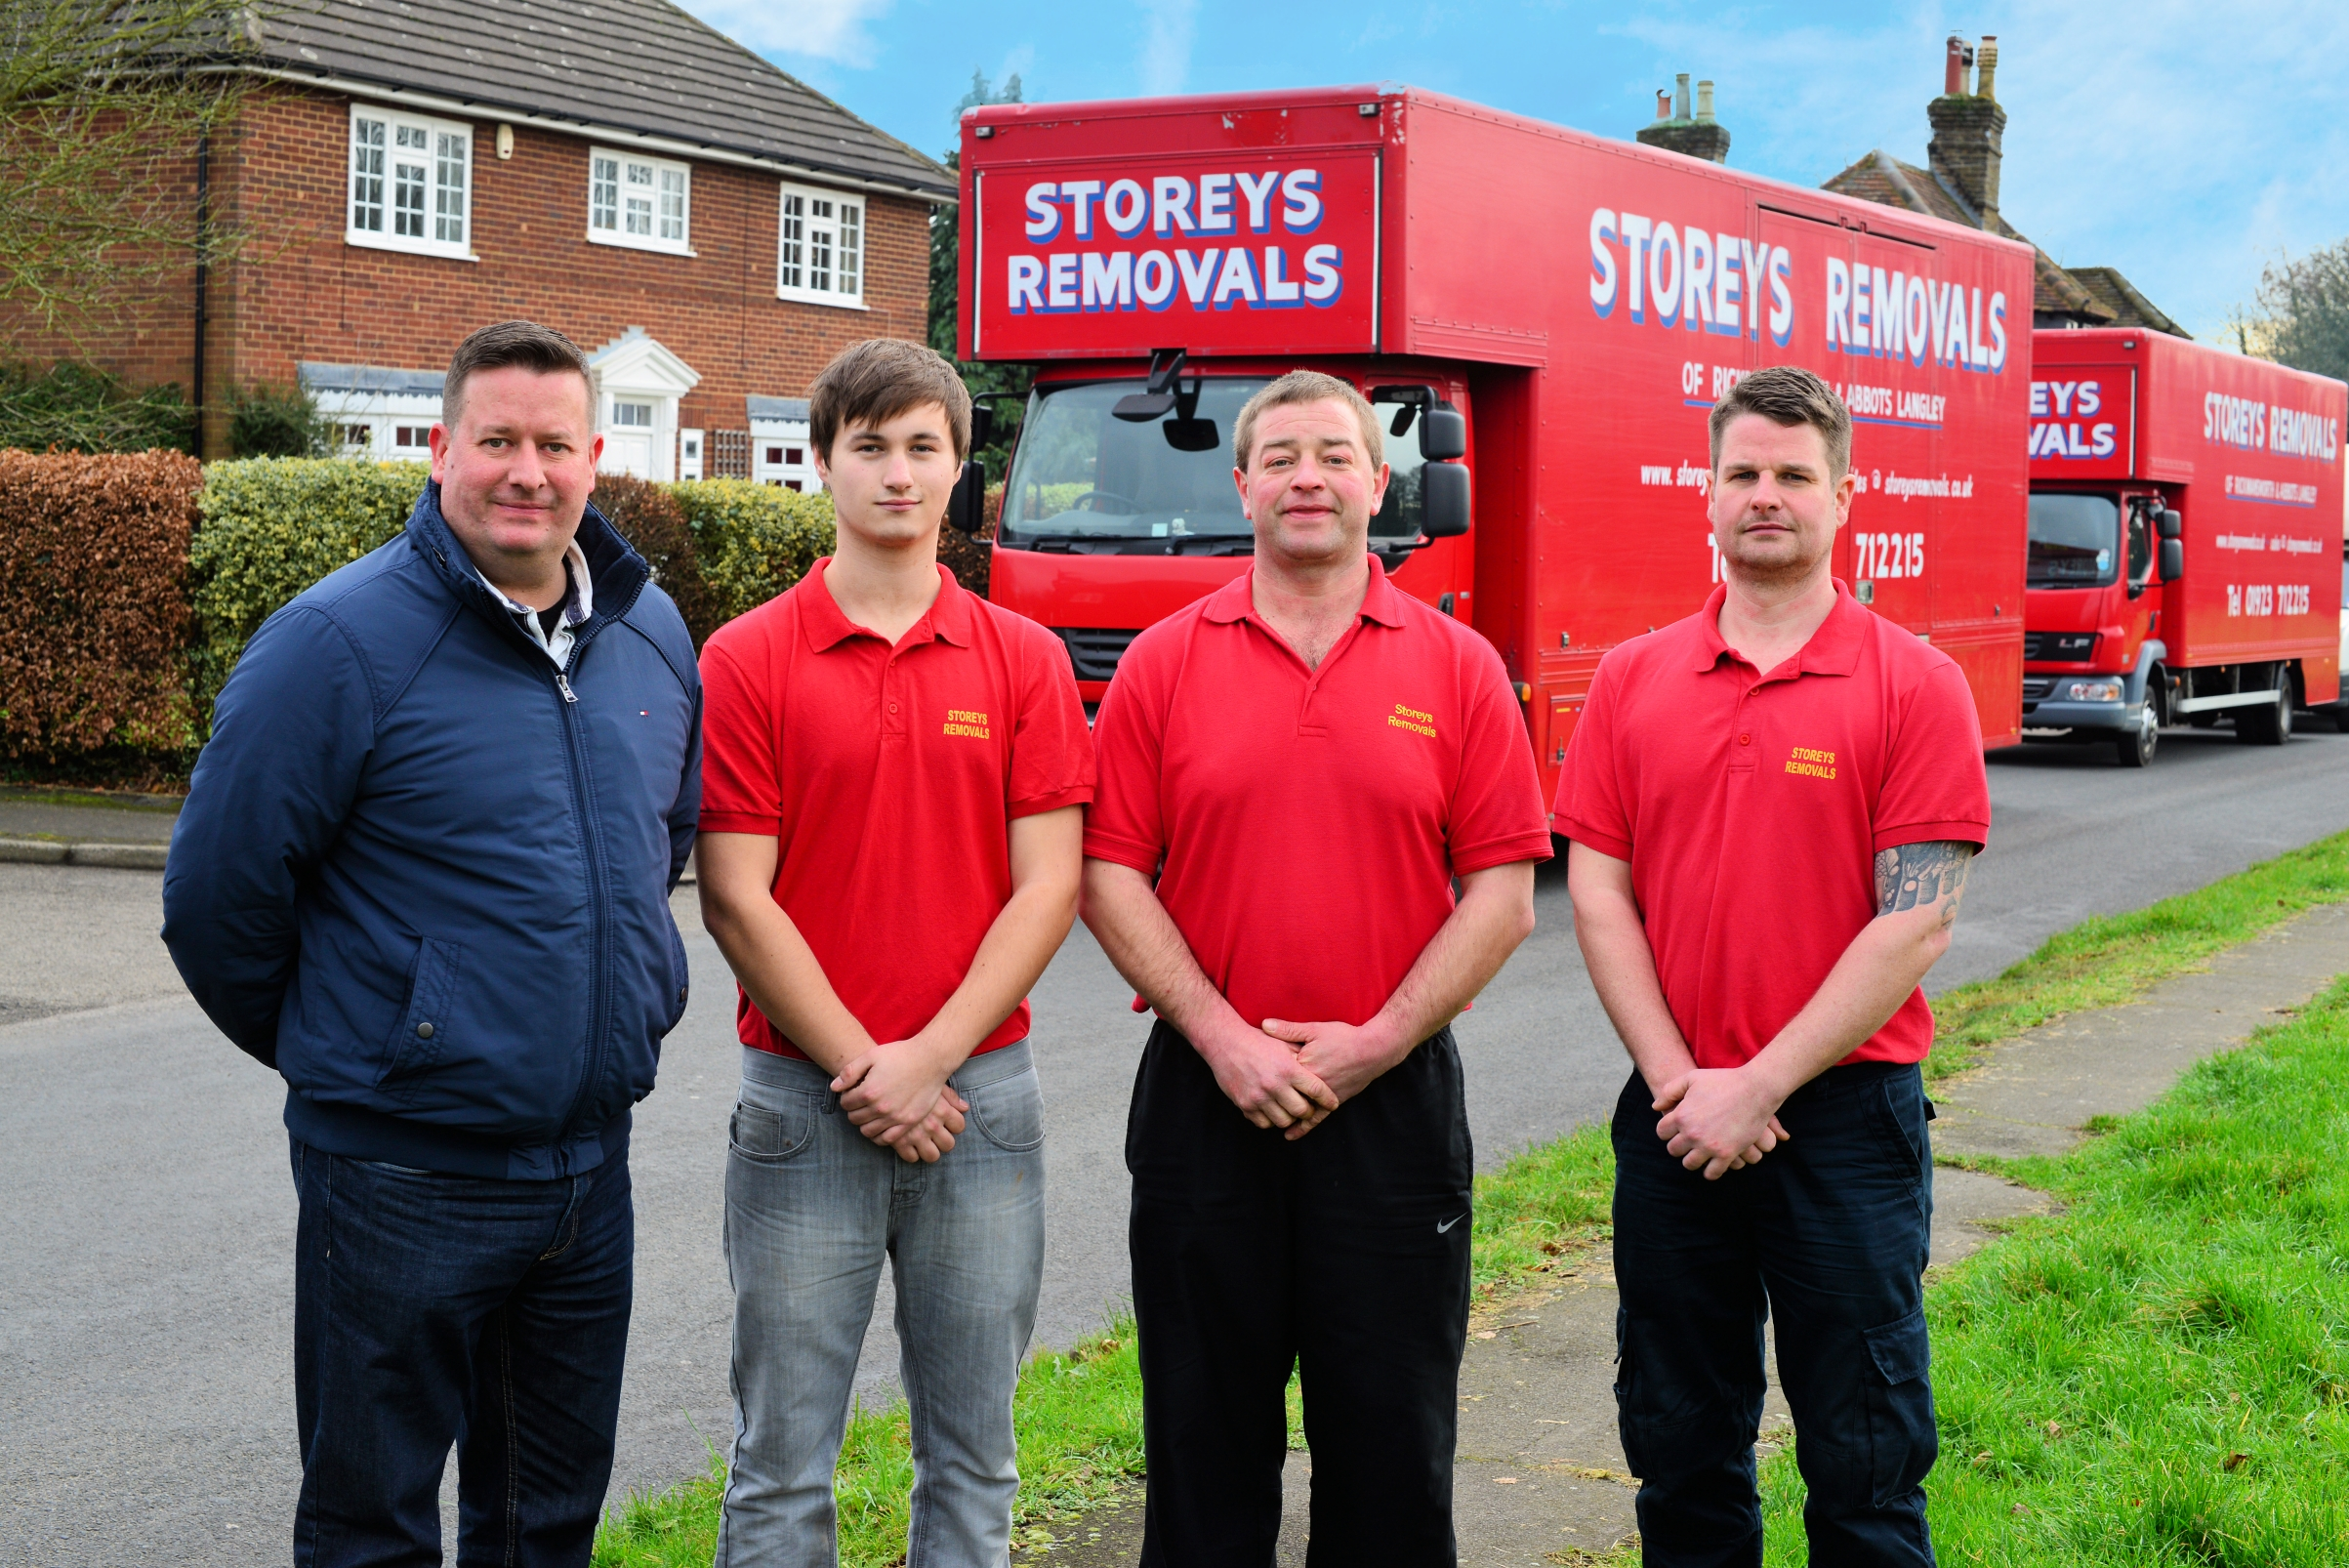 About Storeys Removals - House Removals in London & UK Wide